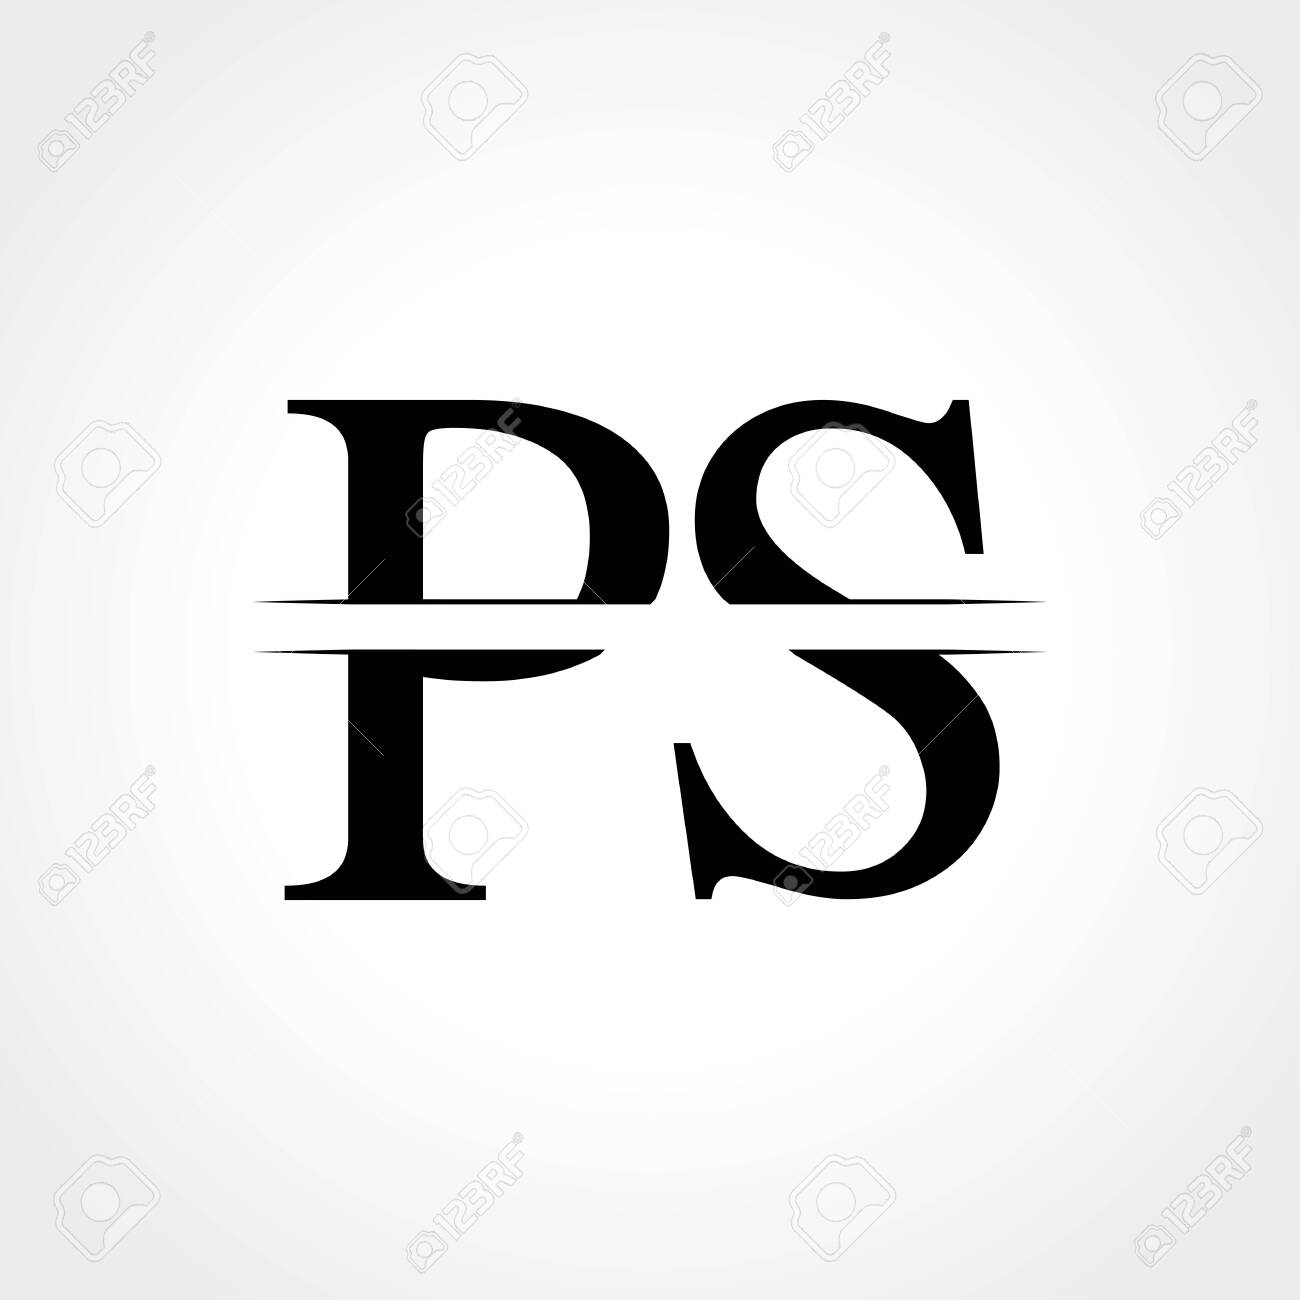 Initial Monogram Letter Ps Logo Design Vector Template Abstract Royalty Free Cliparts Vectors And Stock Illustration Image 142068042 Check out our playstation logo selection for the very best in unique or custom, handmade pieces from our video games shops. initial monogram letter ps logo design vector template abstract